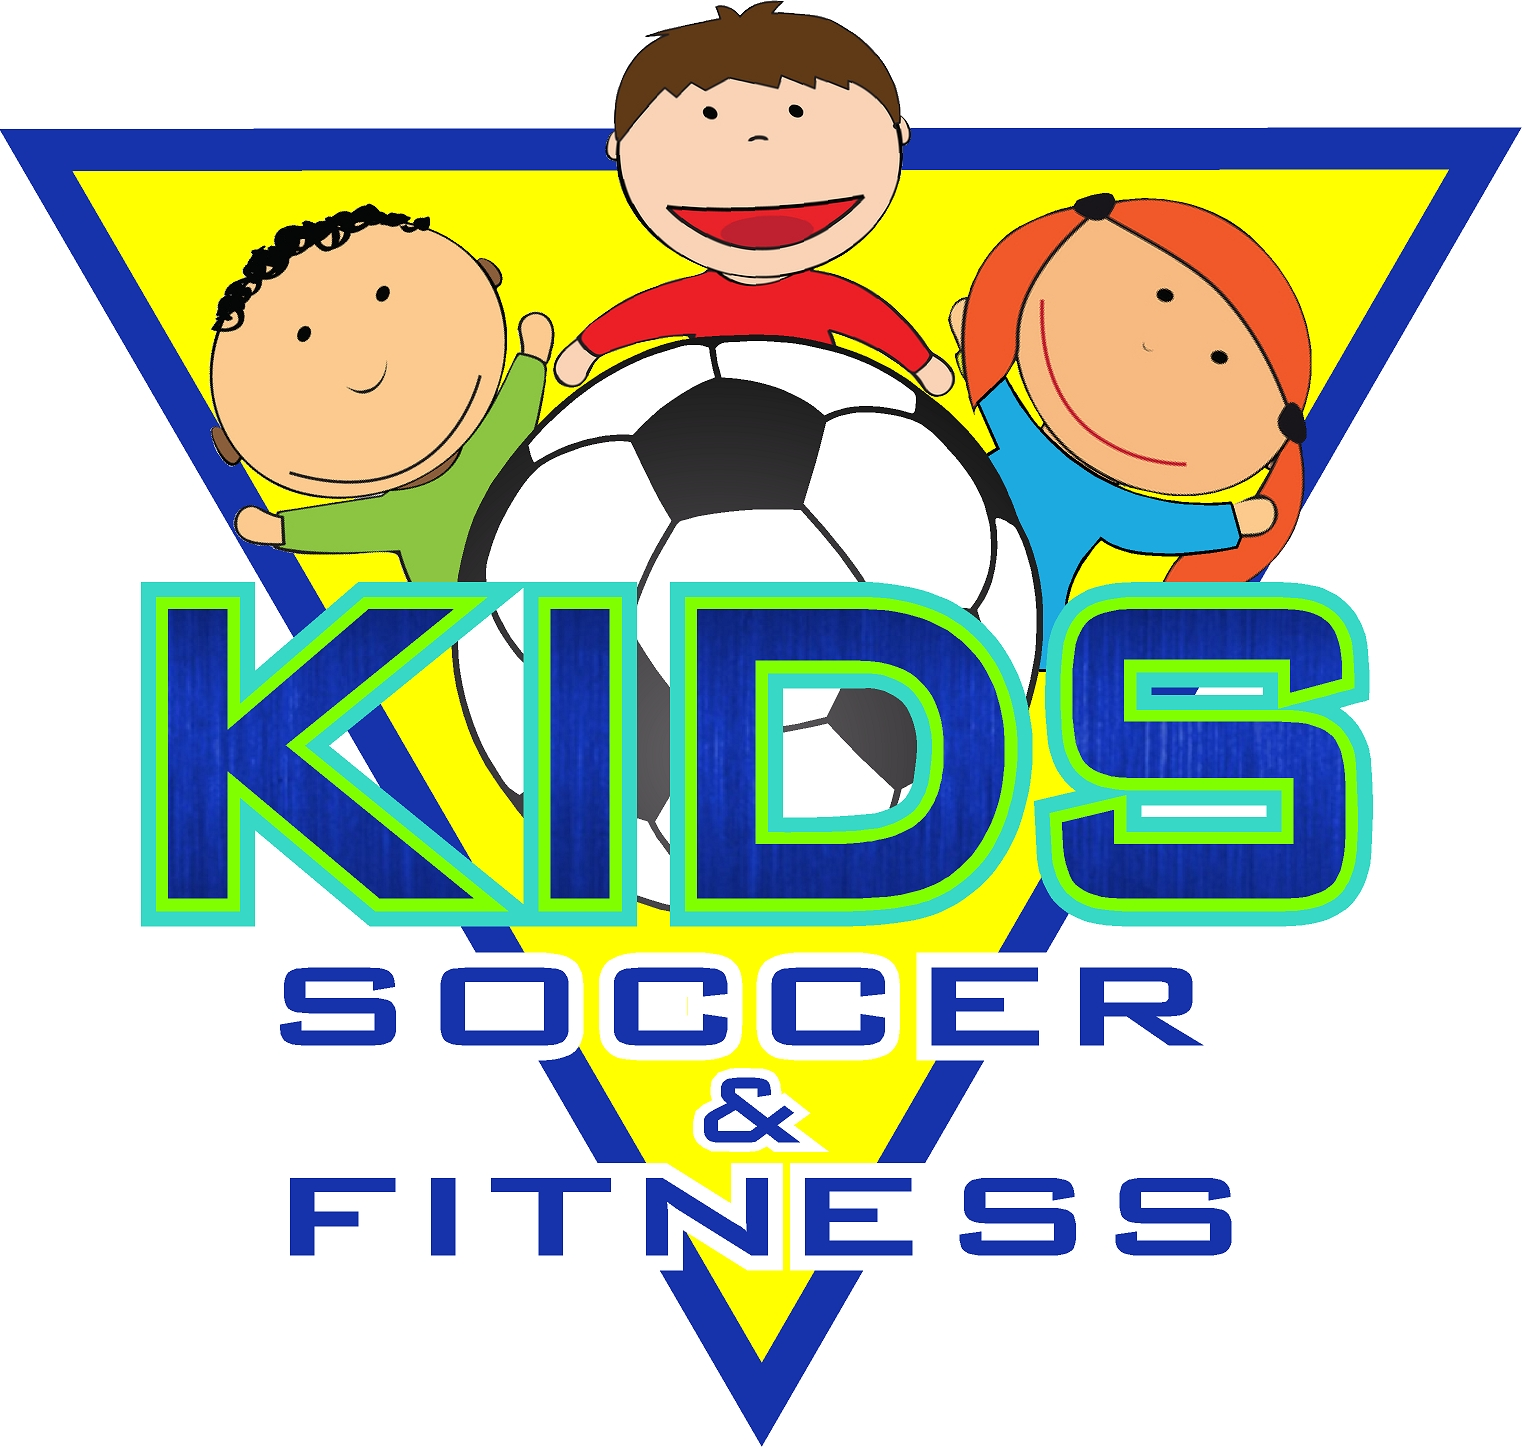 kids soccer  fitness logo  jpeg